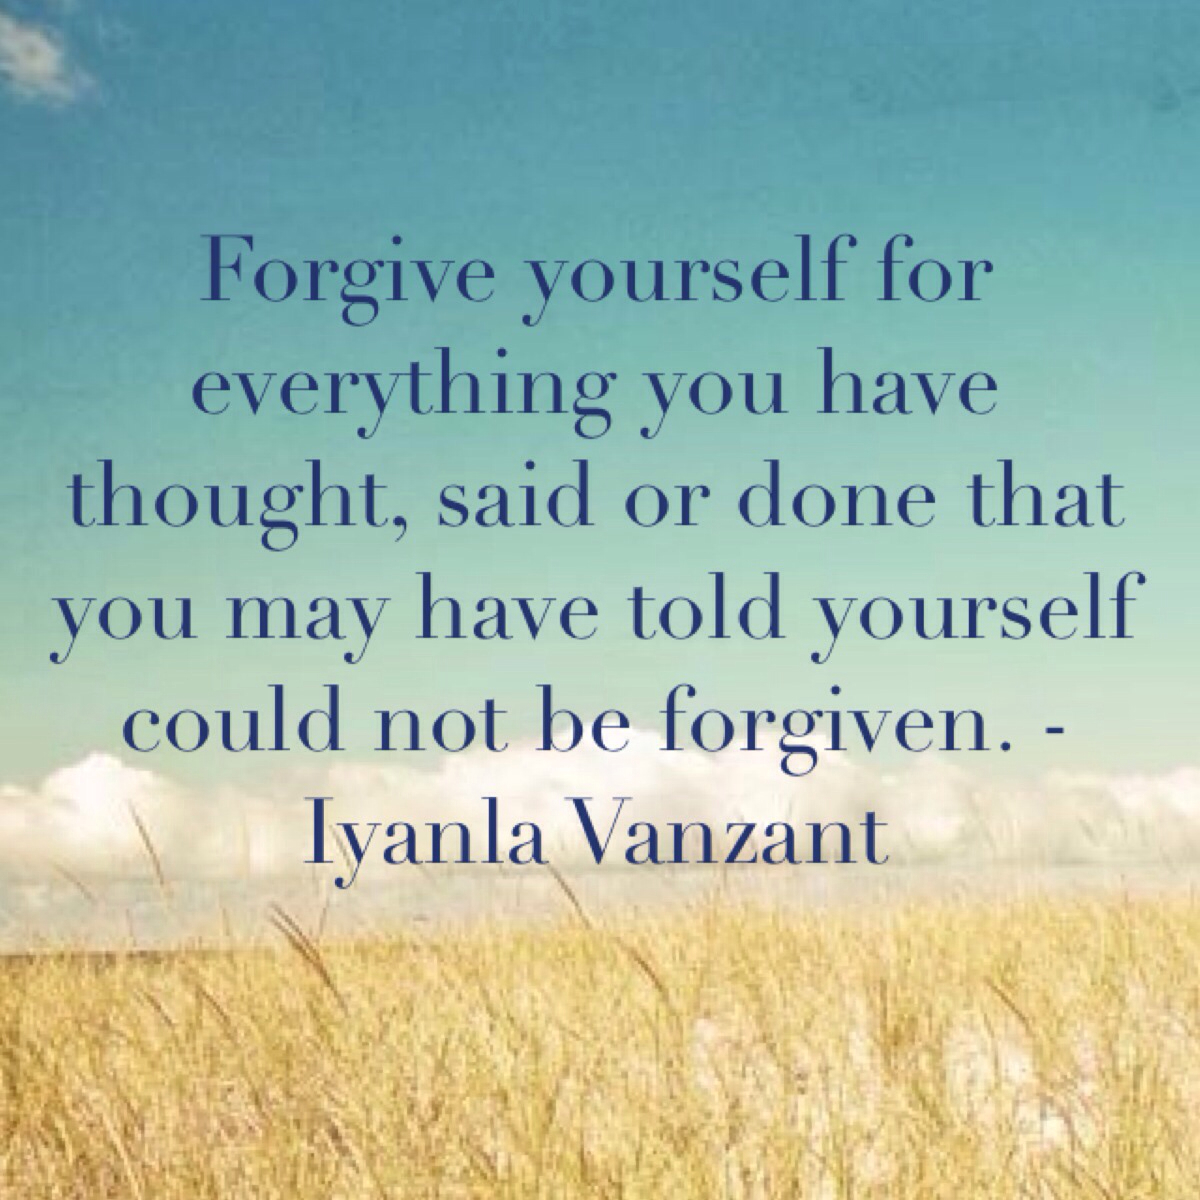 Td Jakes Quotes On Life: Iyanla Vanzant Quotes About Forgiveness. QuotesGram